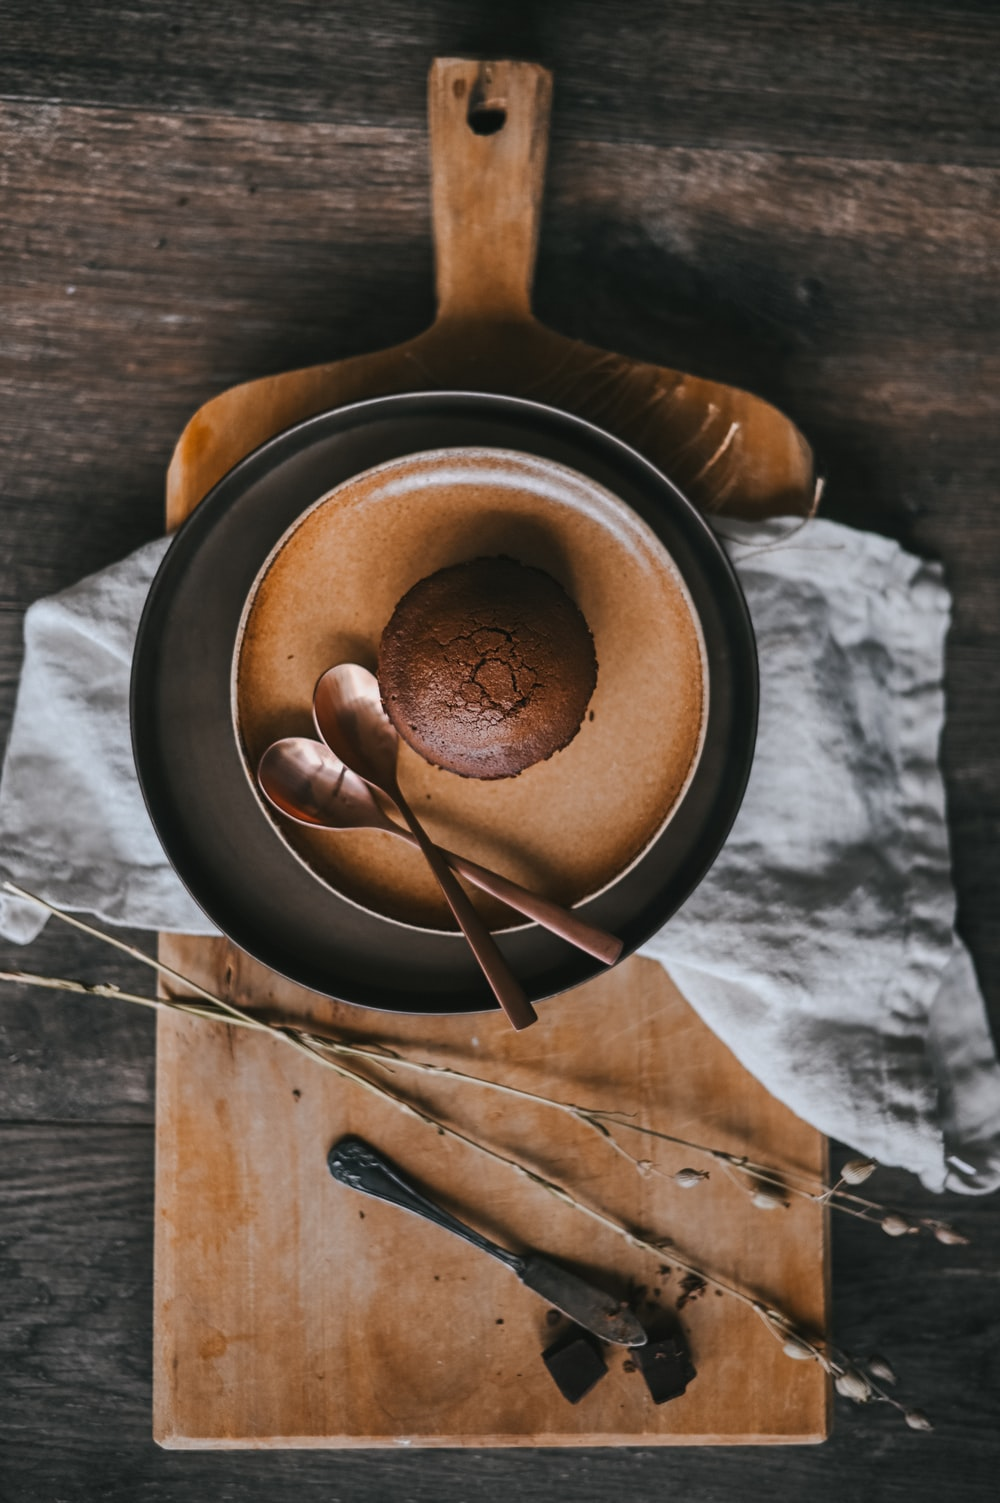 brown wooden ladle on brown round bowl